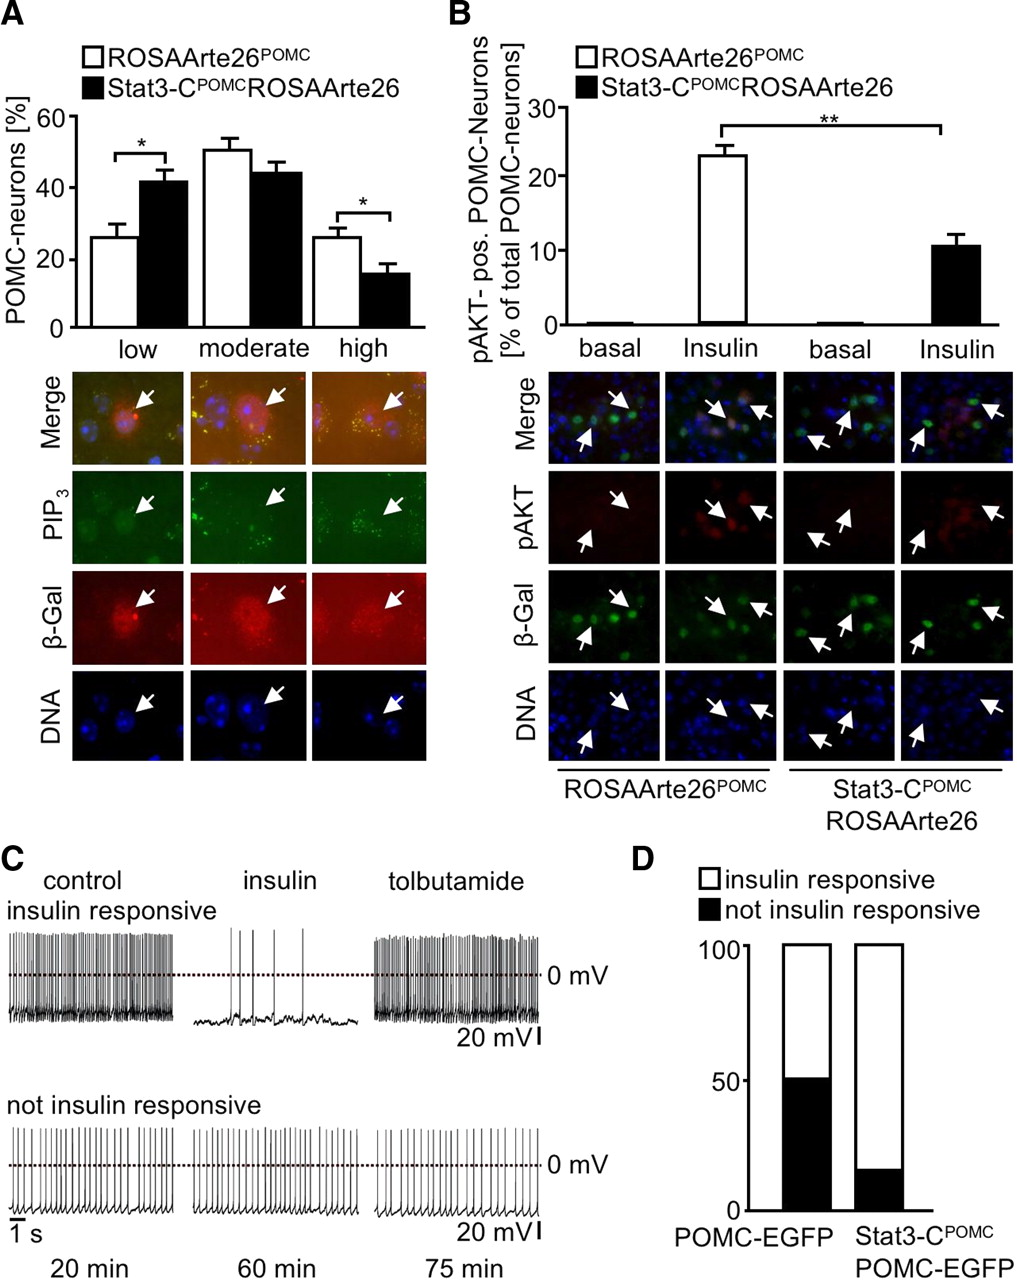 Enhanced Stat3 Activation in POMC Neurons Provokes Negative